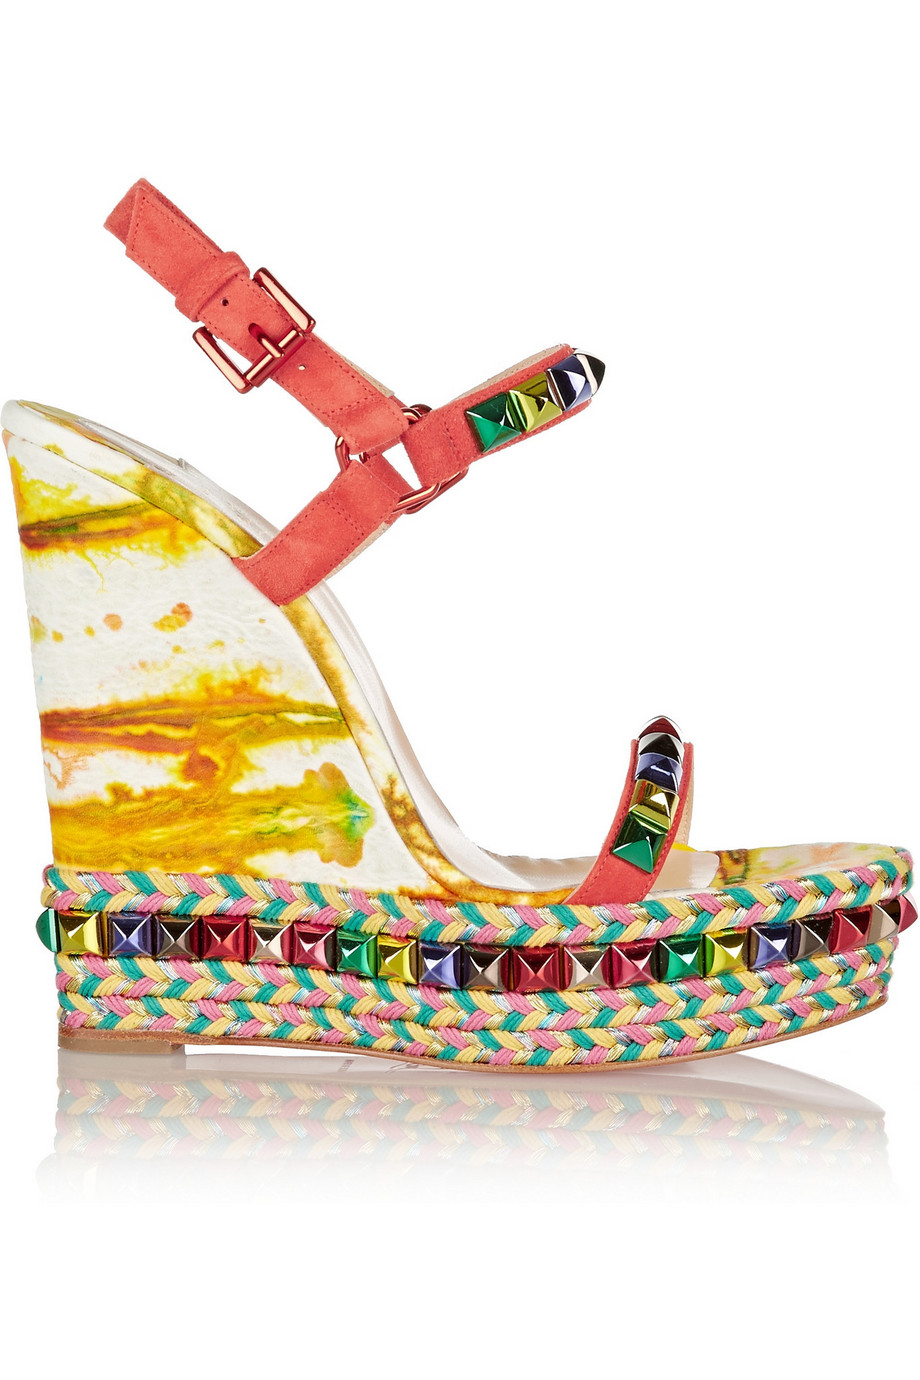 Christian Louboutin Cataclou 140 Embellished Suede and Leather Wedge Sandals, Red/Yellow, Women's US Size: 8.5, Size: 39